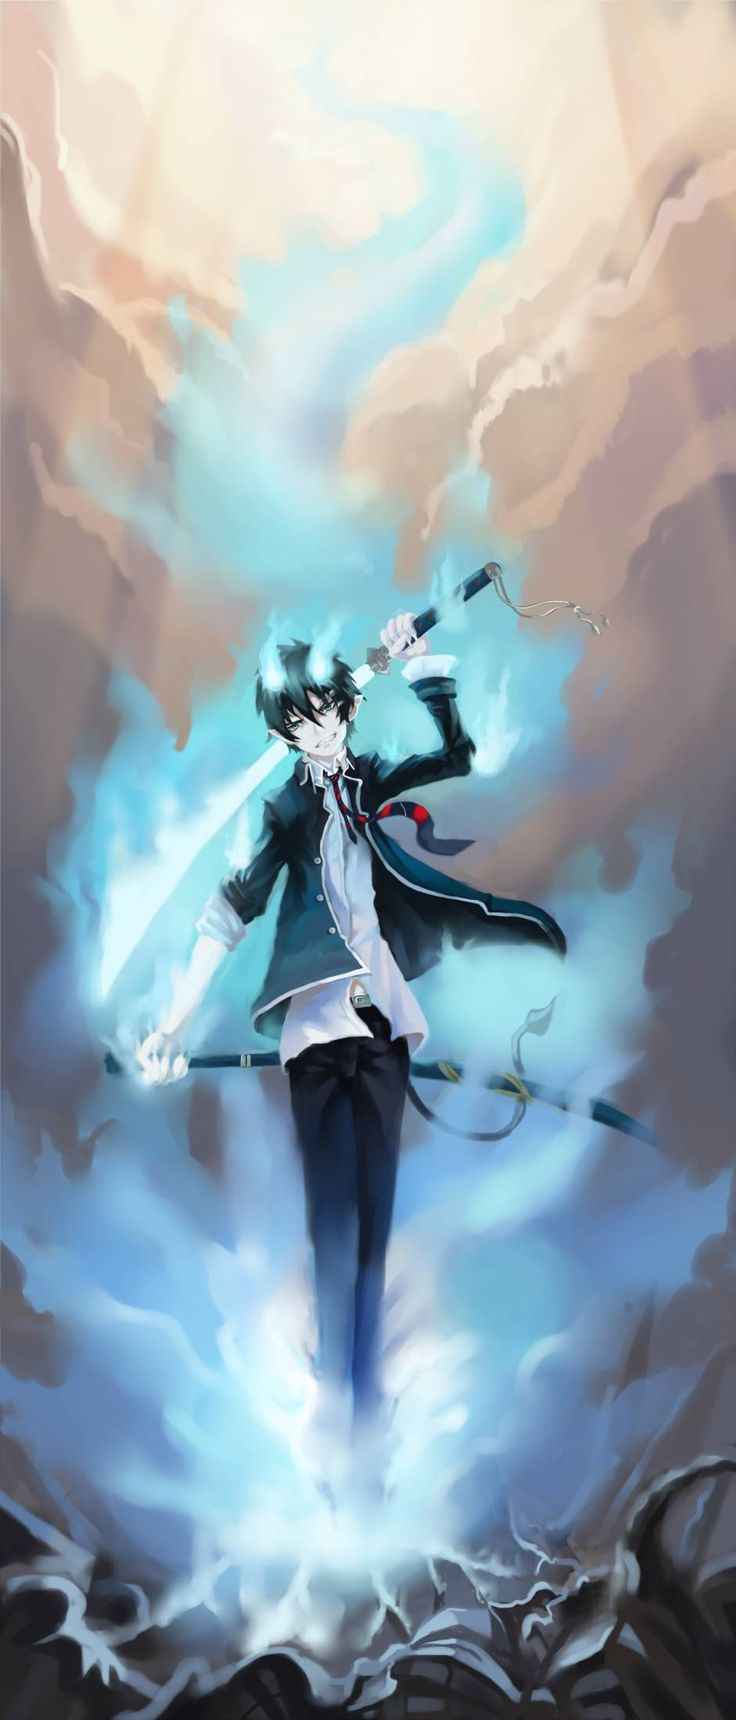 Rin Okumura - Ao no Exorcist / Blue Exorcist